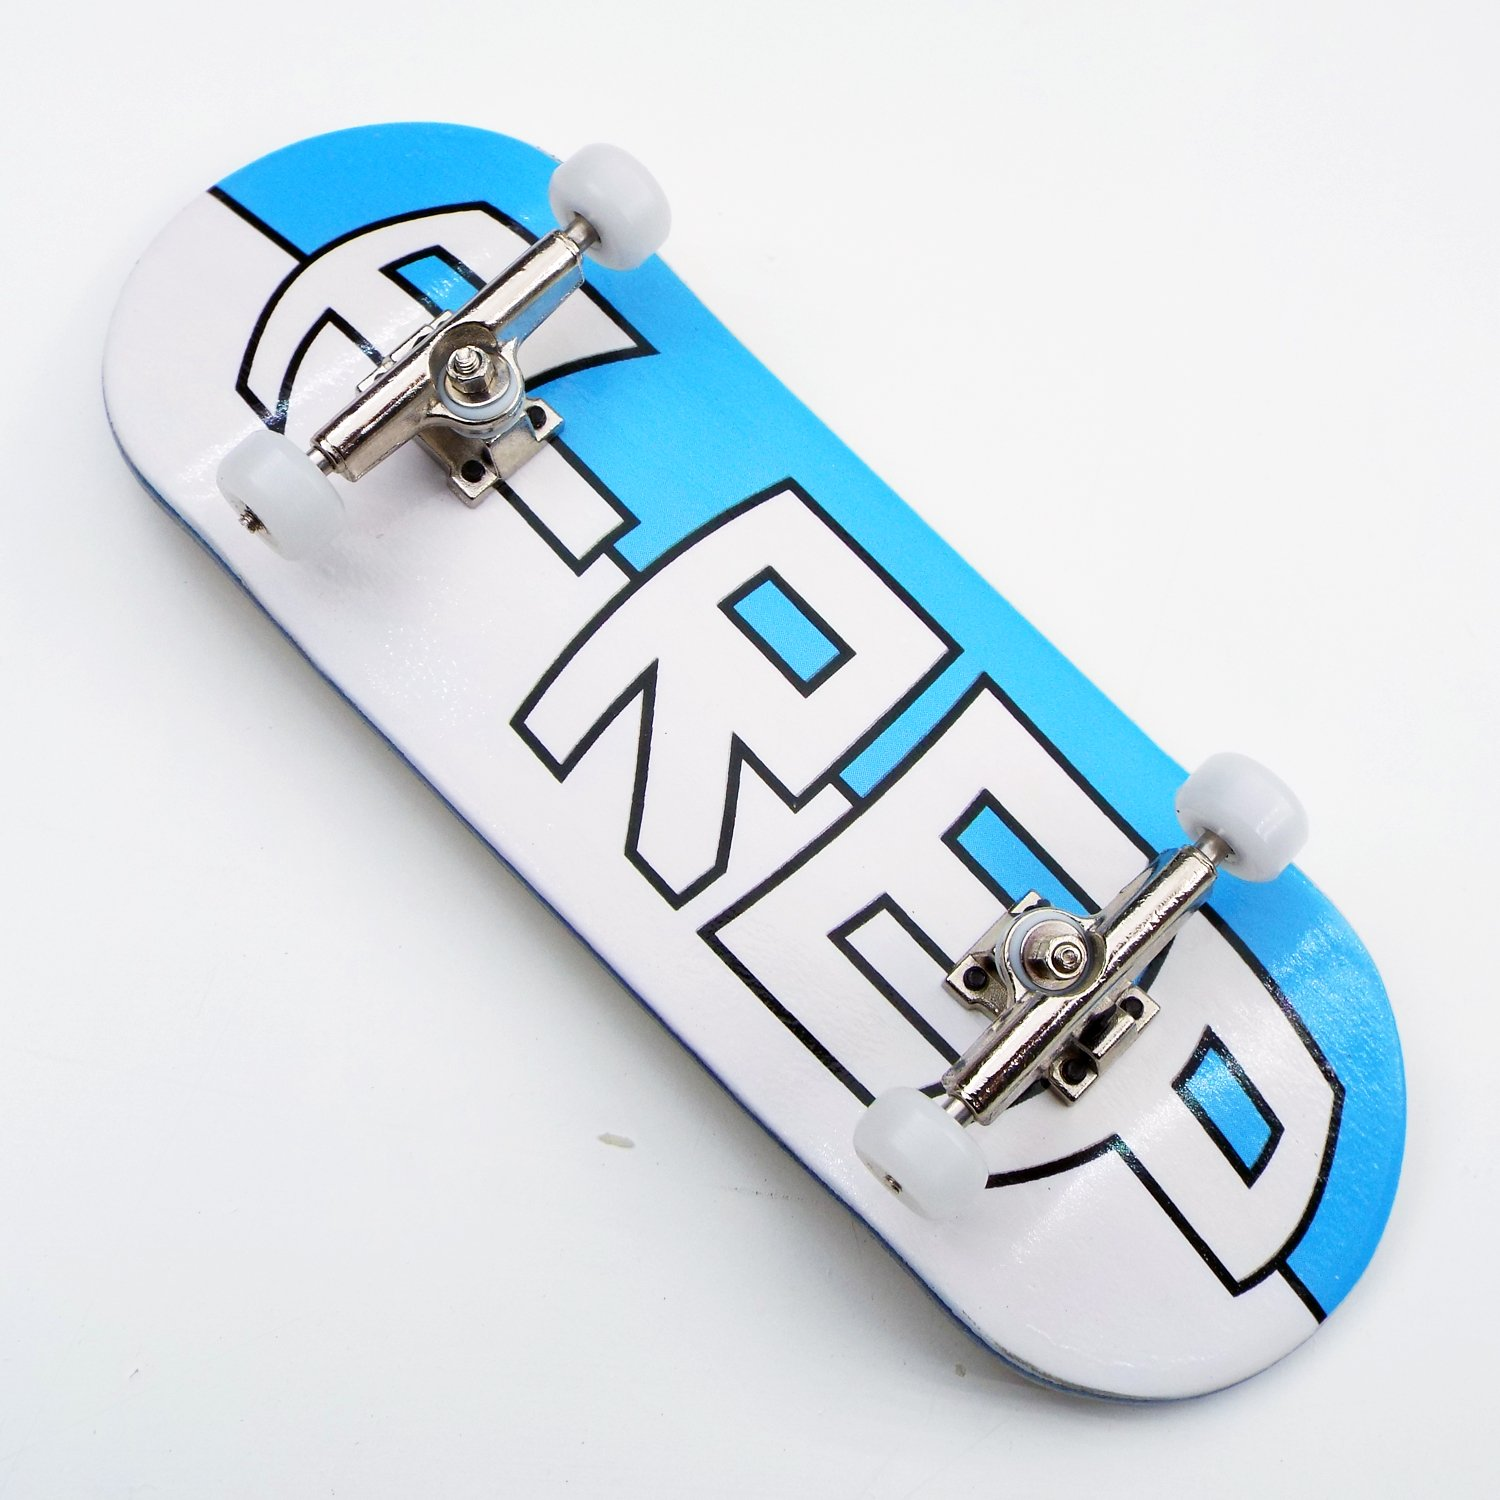 Peoples Republic P-Rep Large Logo 34mm Complete Wooden Fingerboard w CNC Lathed Bearing Wheels … by Peoples Republic (Image #2)